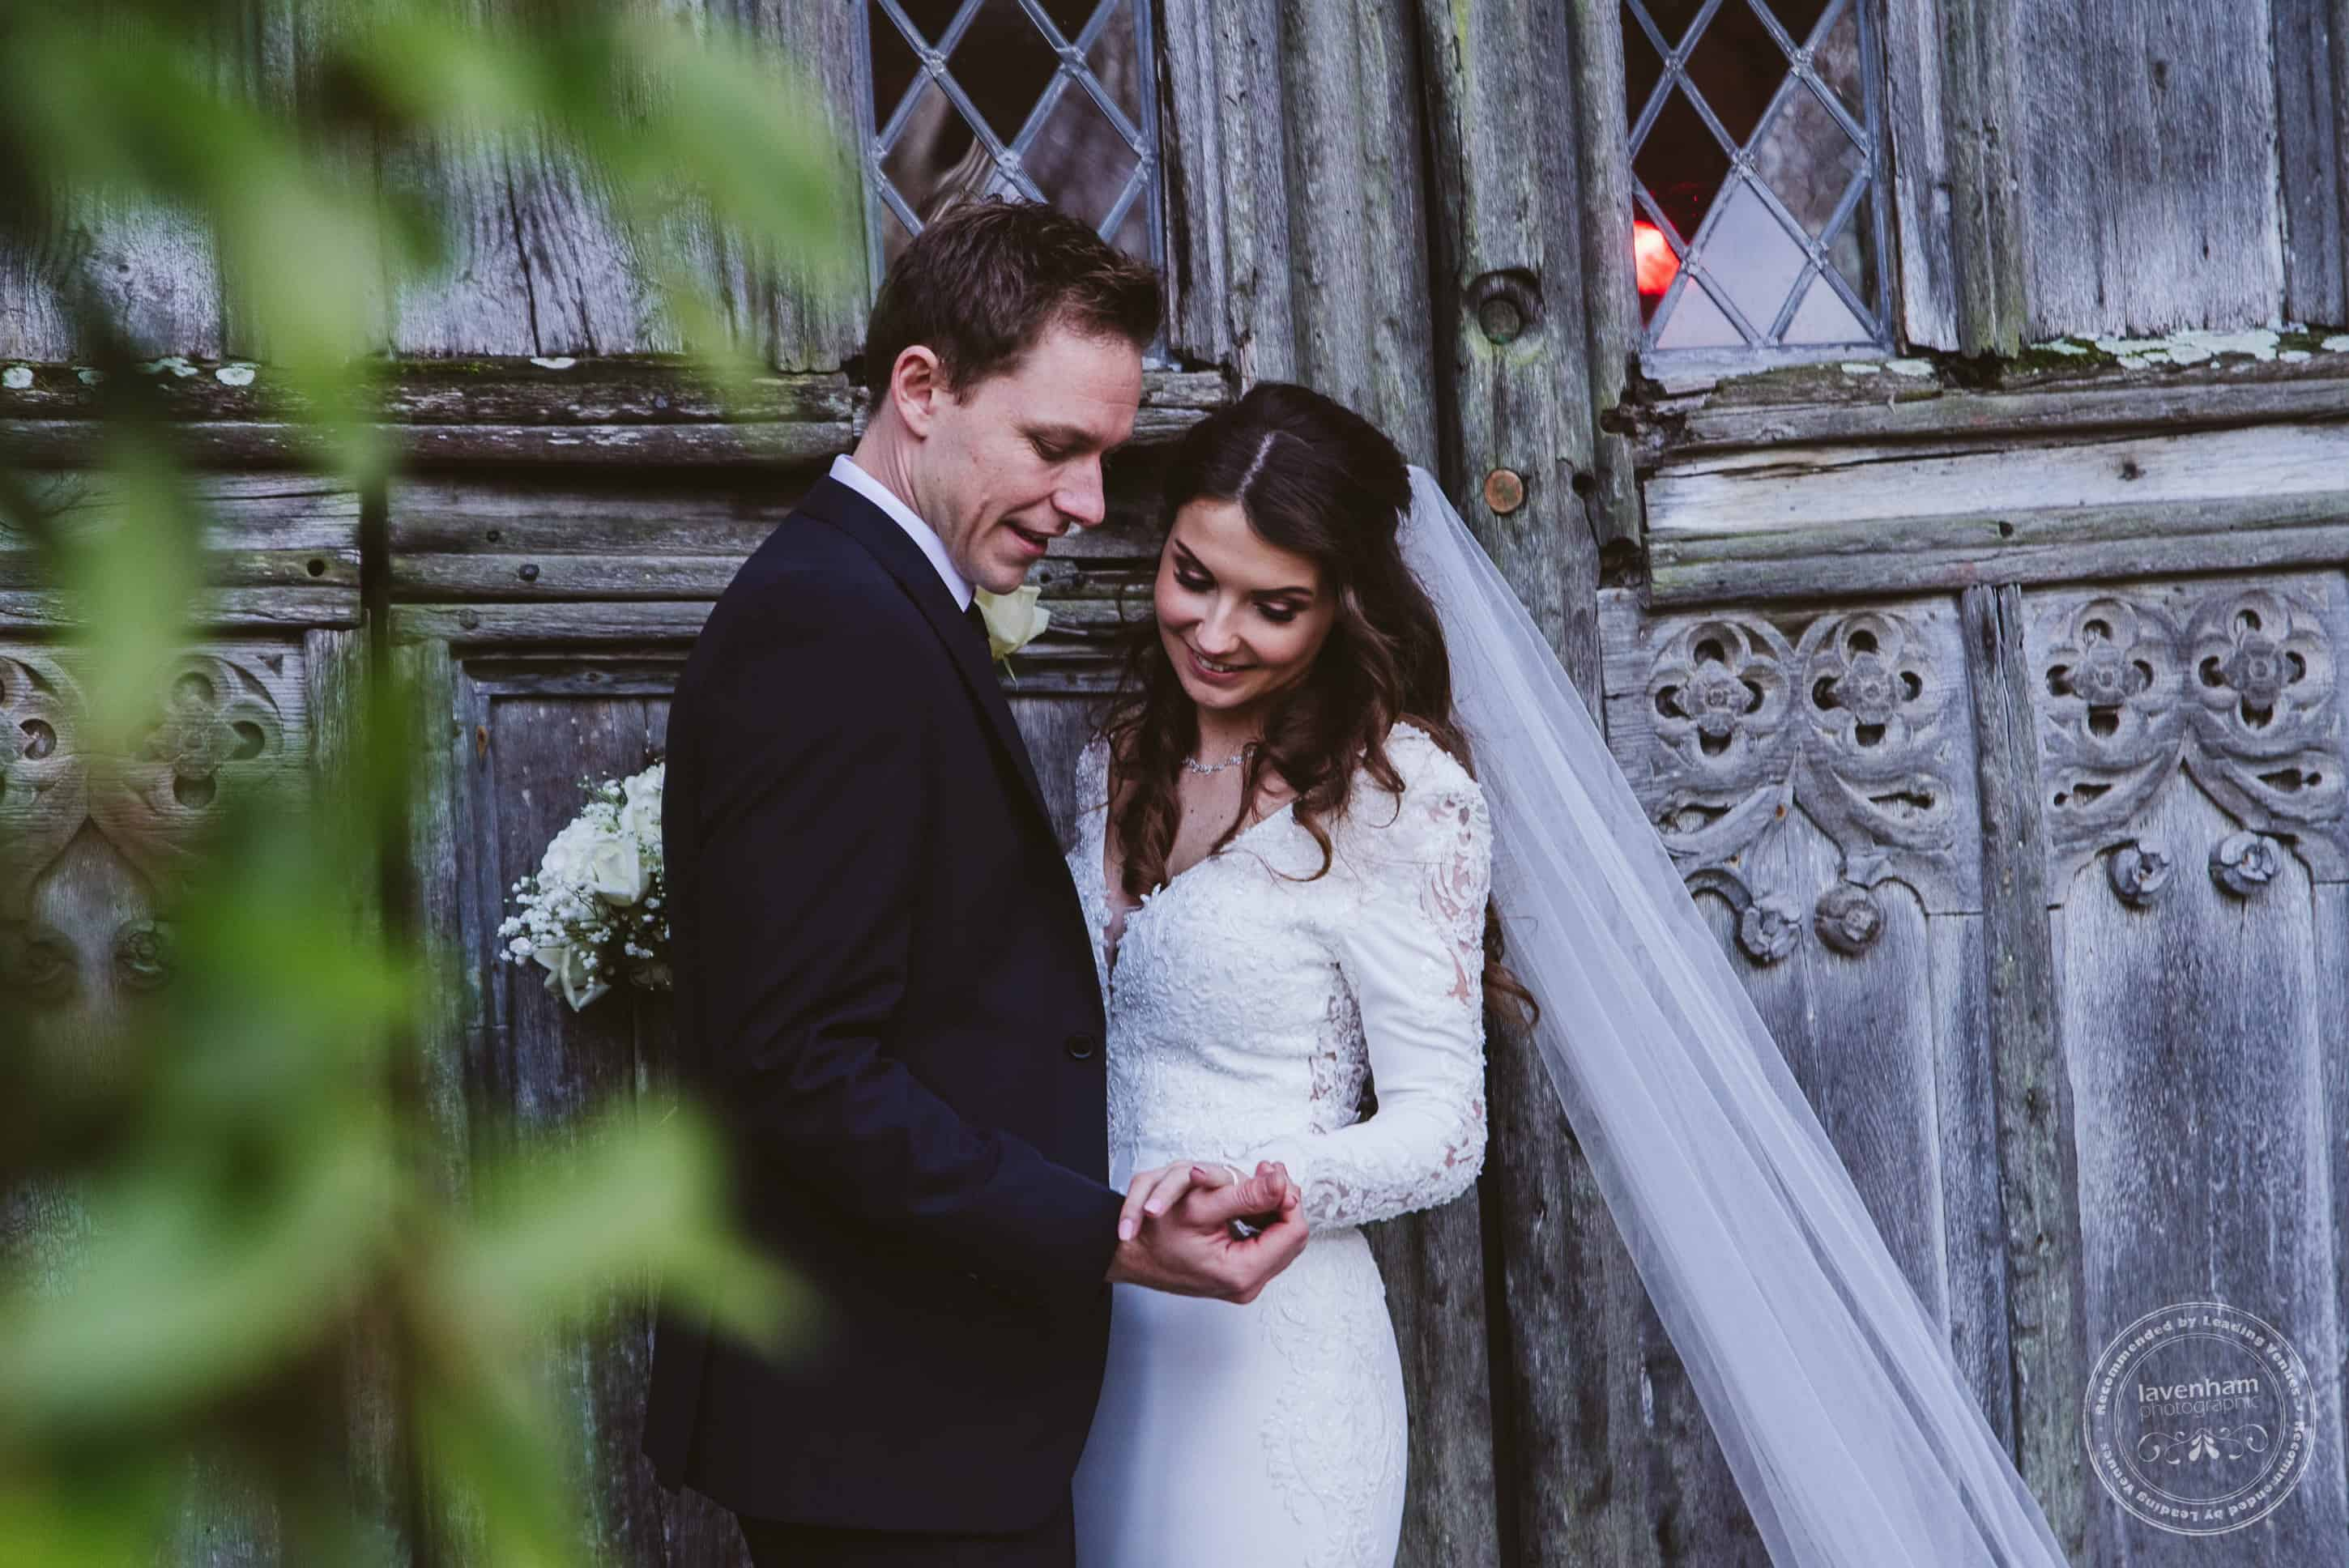 221219 Leez Priory Wedding Photoraphy 108